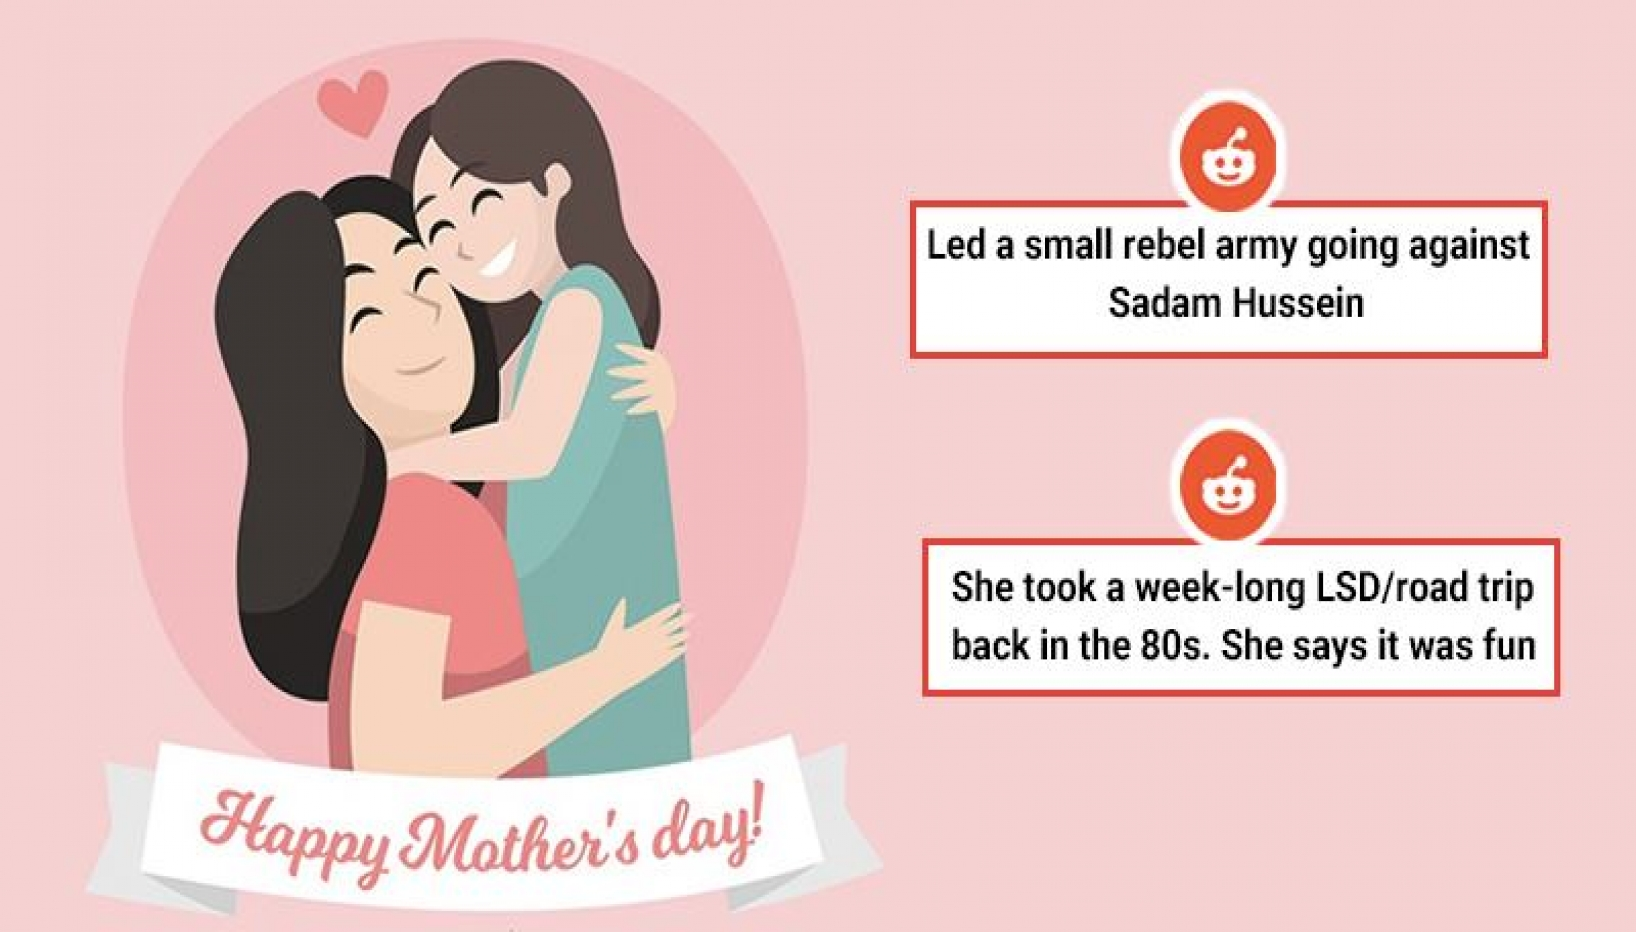 On Mother's Day 2021, Redditors Share Coolest Their Things Mothers Have Done